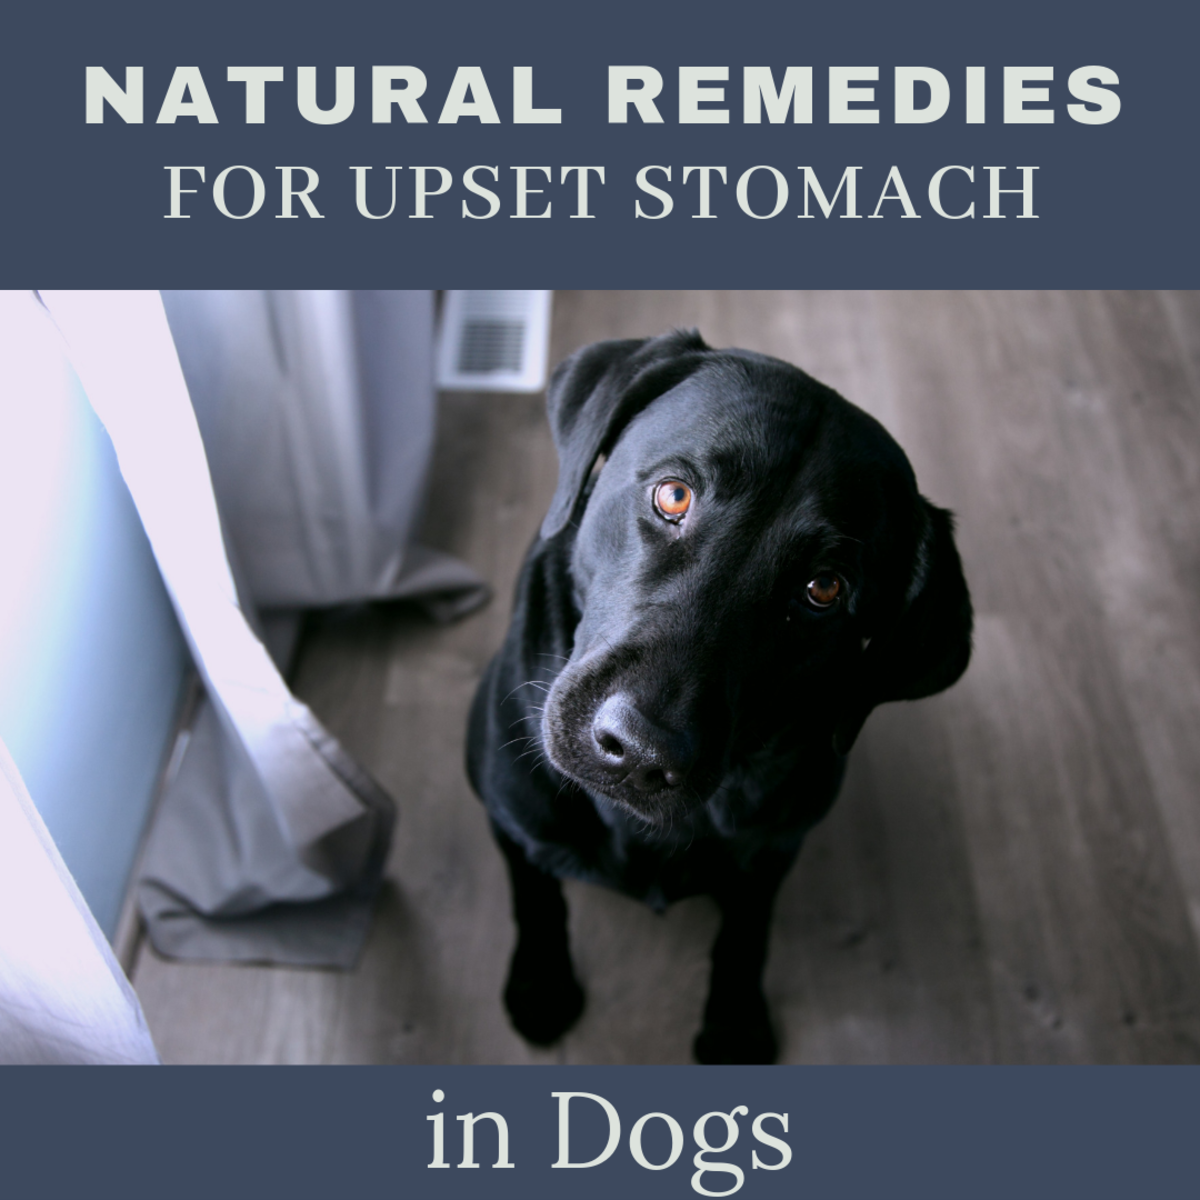 Natural Remedies for Your Dog's Upset Stomach